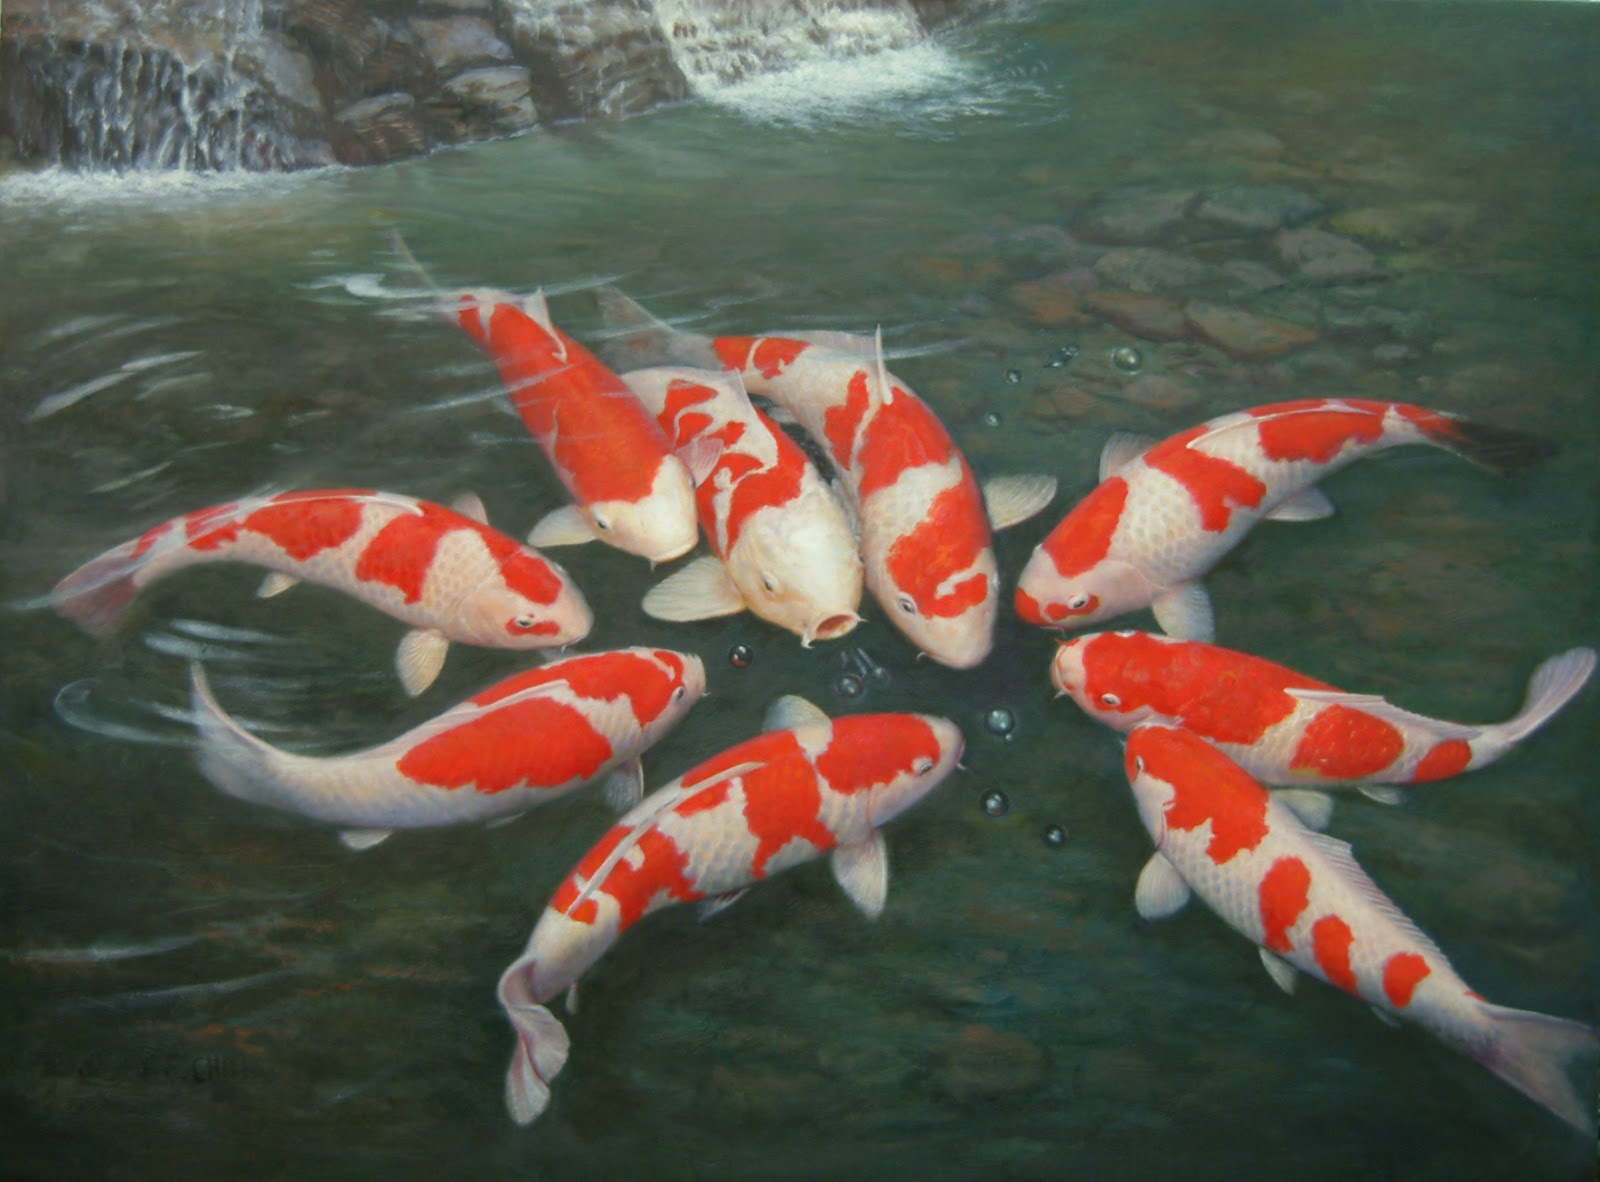 Koi aquarium fish koi koi koi la de koi coy koi koi fish for Pictures of coy fish